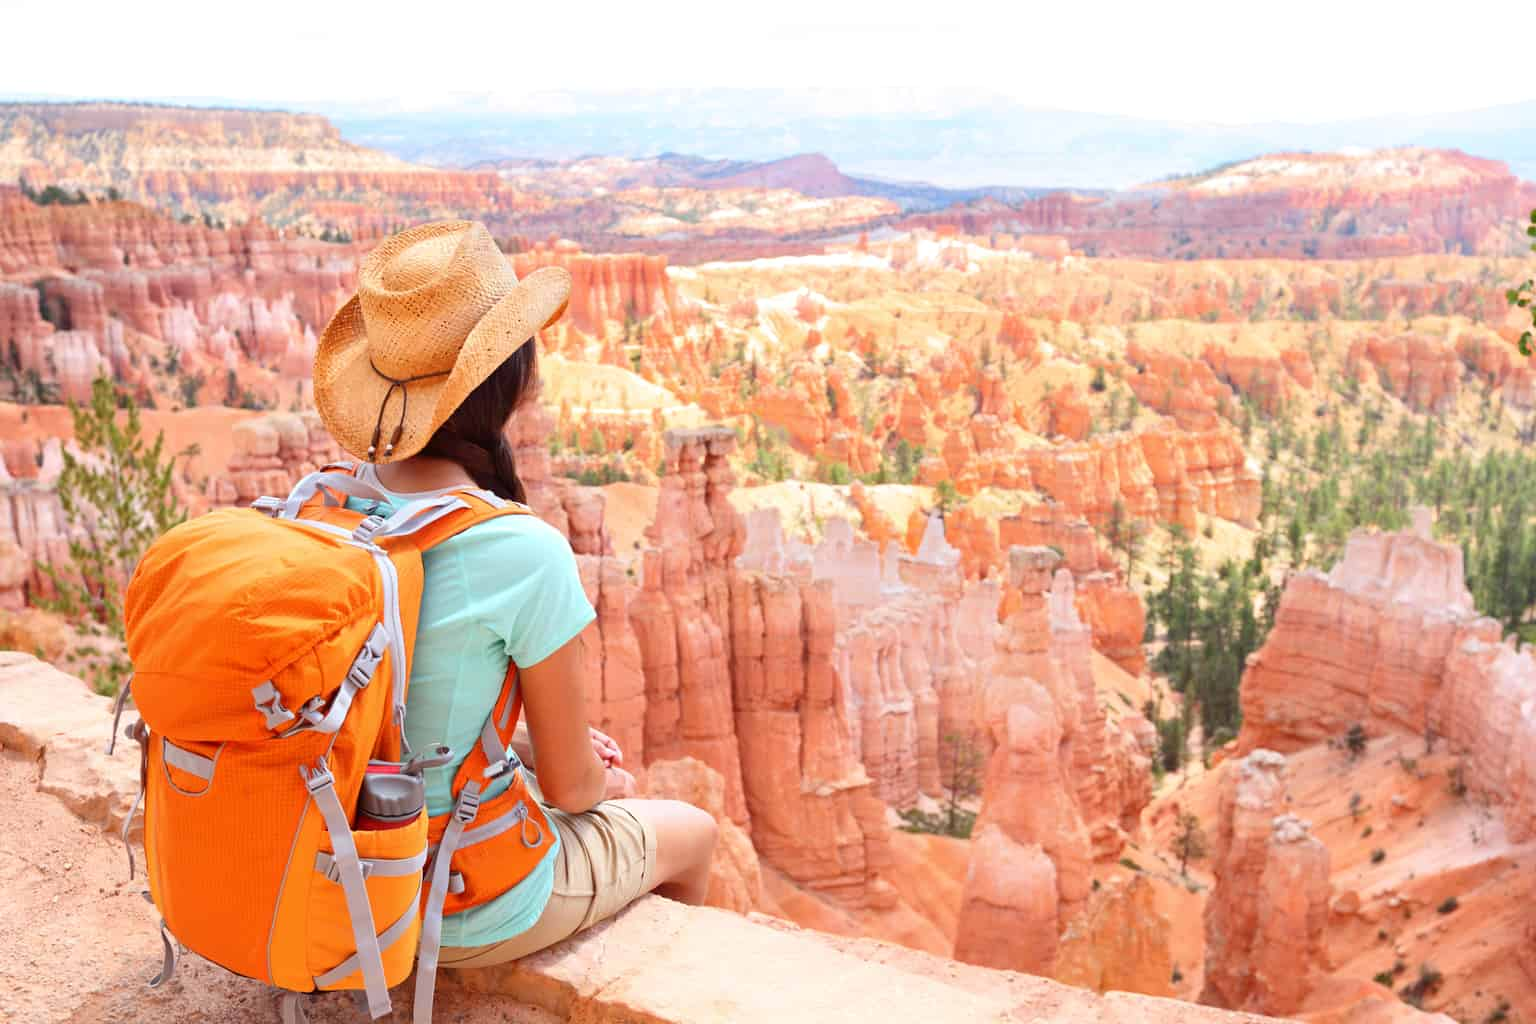 A woman sits on a ledge looking out at the view at Bryce Canyon. She is wearing an orange backpack.